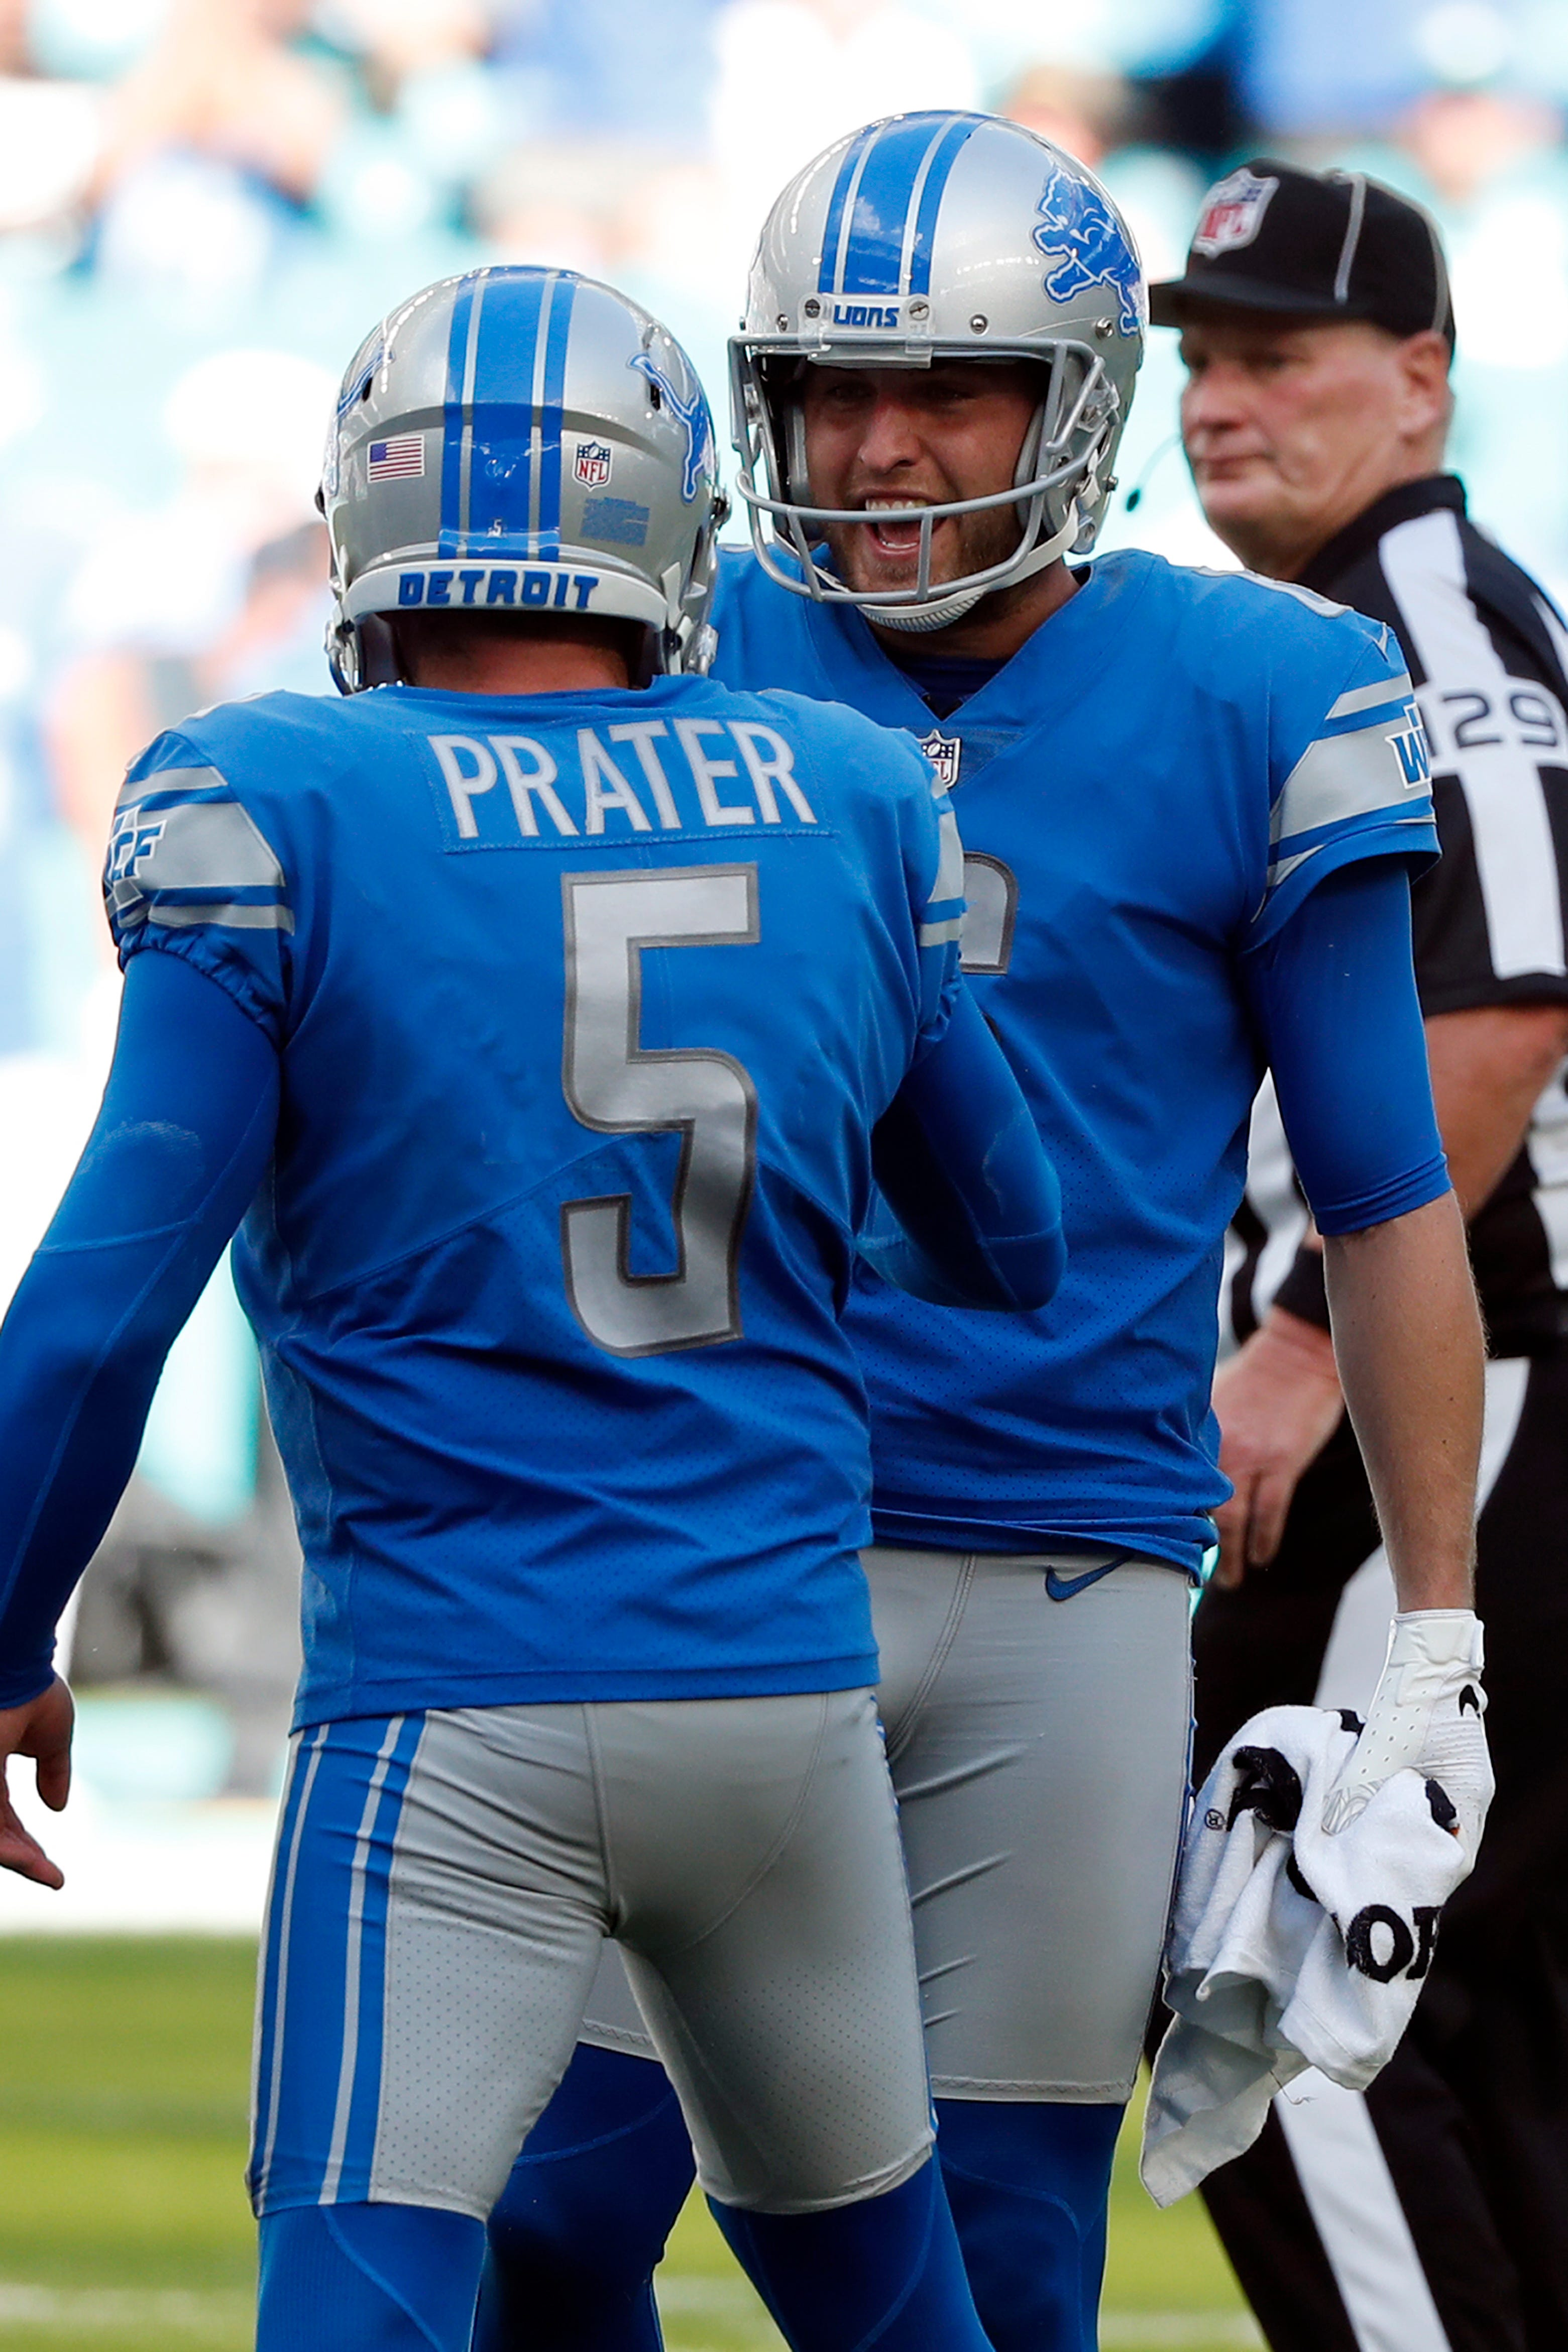 Lions punter Sam Martin celebrates a field goal with kicker Matt Prater during the second half of the Lions' 32-21 win on Sunday, Oct. 21, 2018, in Miami Gardens, Fla.